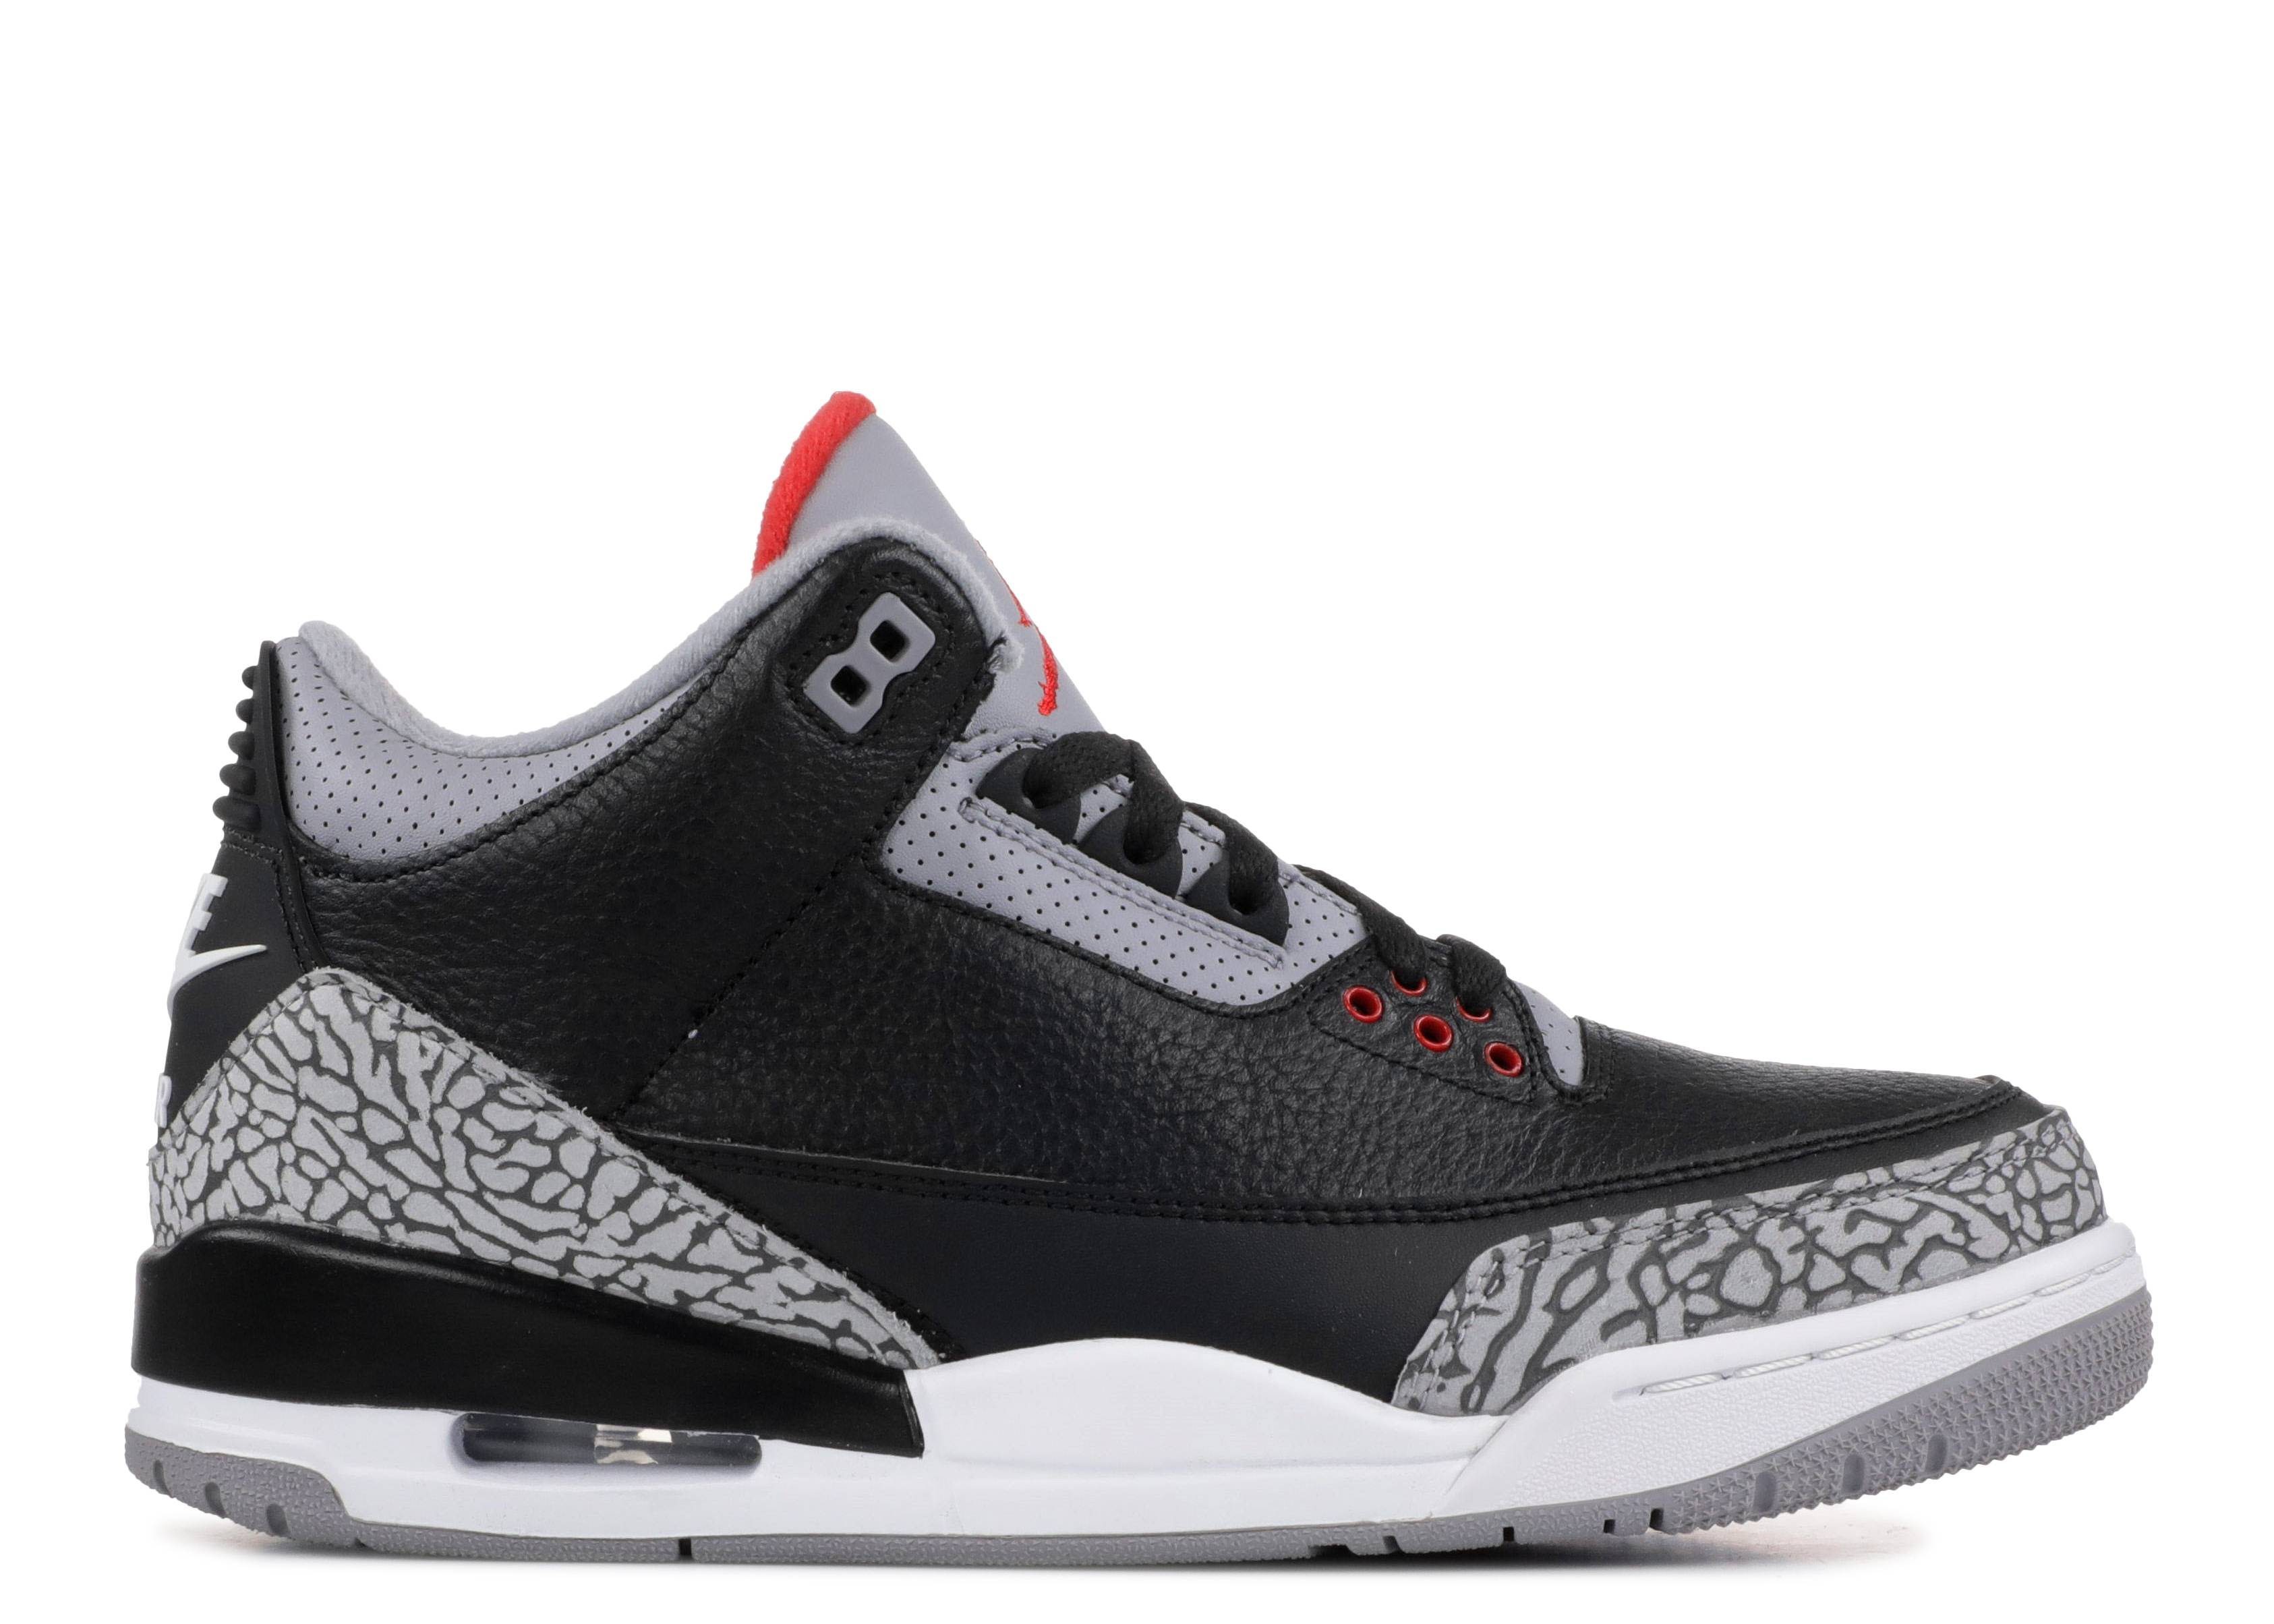 5af8ecbd2f91cd air jordan. air jordan 3 retro og